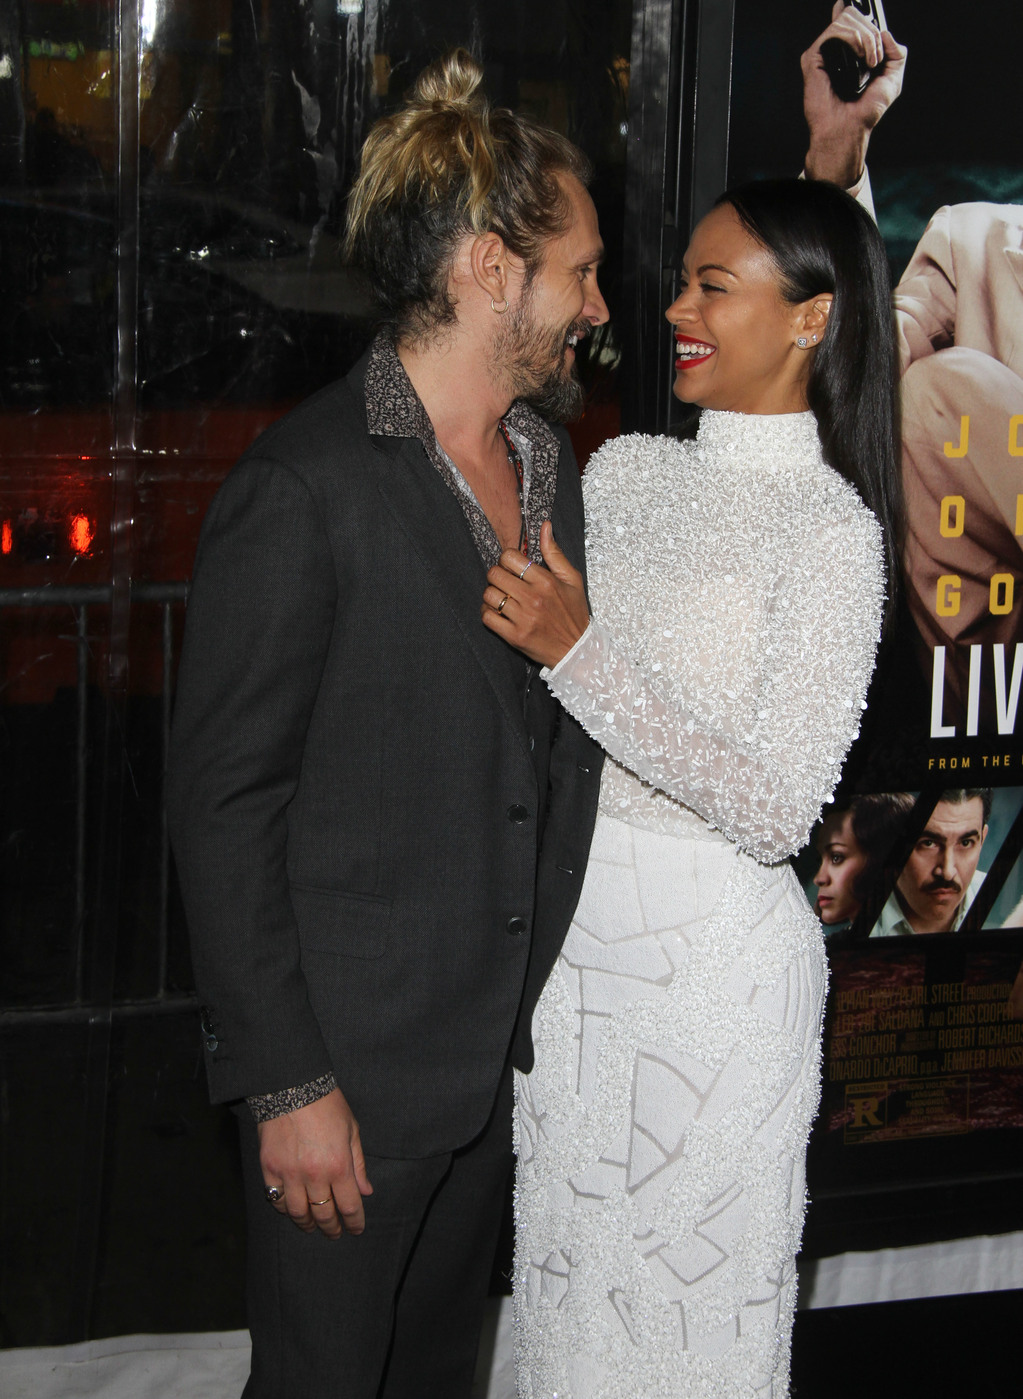 160733, Zoe Saldana, Marco Perego attend the Los Angeles premiere of 'Live By Night'. Los Angeles, California - Monday January 9, 2017. Photograph: © PacificCoastNews. Los Angeles Office (PCN): +1 310.822.0419 UK Office (Photoshot): +44 (0) 20 7421 6000 sales@pacificcoastnews.com FEE MUST BE AGREED PRIOR TO USAGE